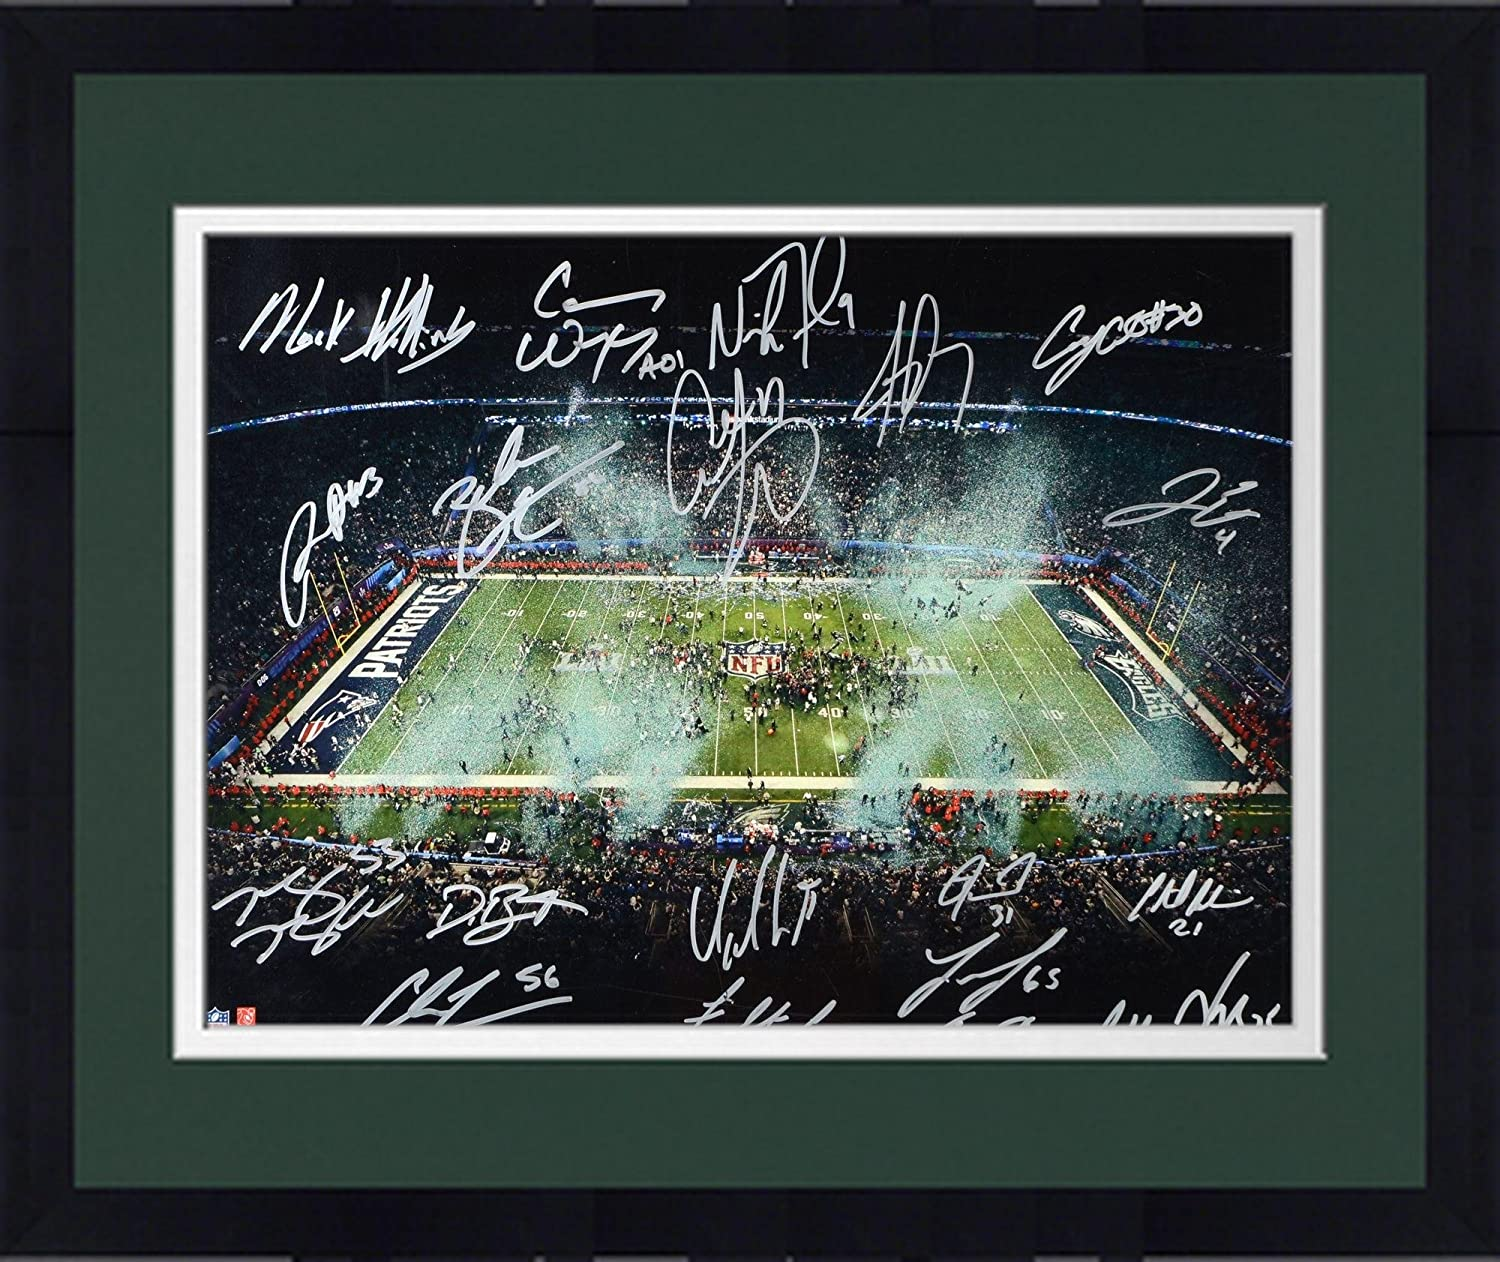 Fanatics Authentic Certified Framed Philadelphia Eagles Autographed 16 x 20 Super Bowl LII Champions Photograph with Multiple Signatures